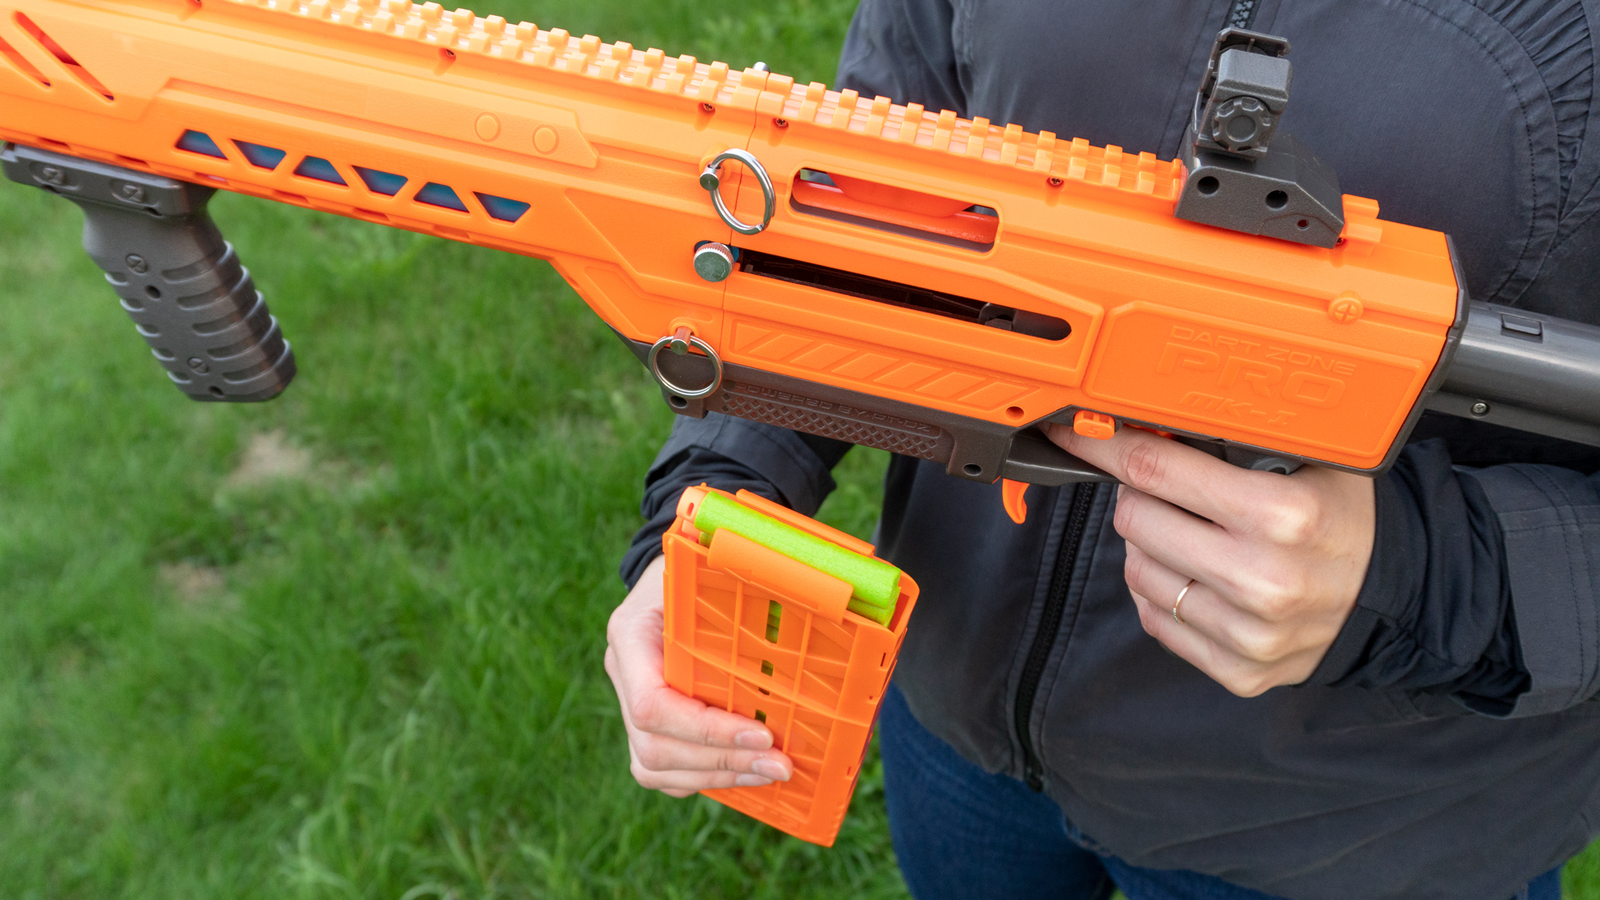 The PRO MK-1 is compatible with Nerf's magazines and darts if you've already got a mountain of accessories.